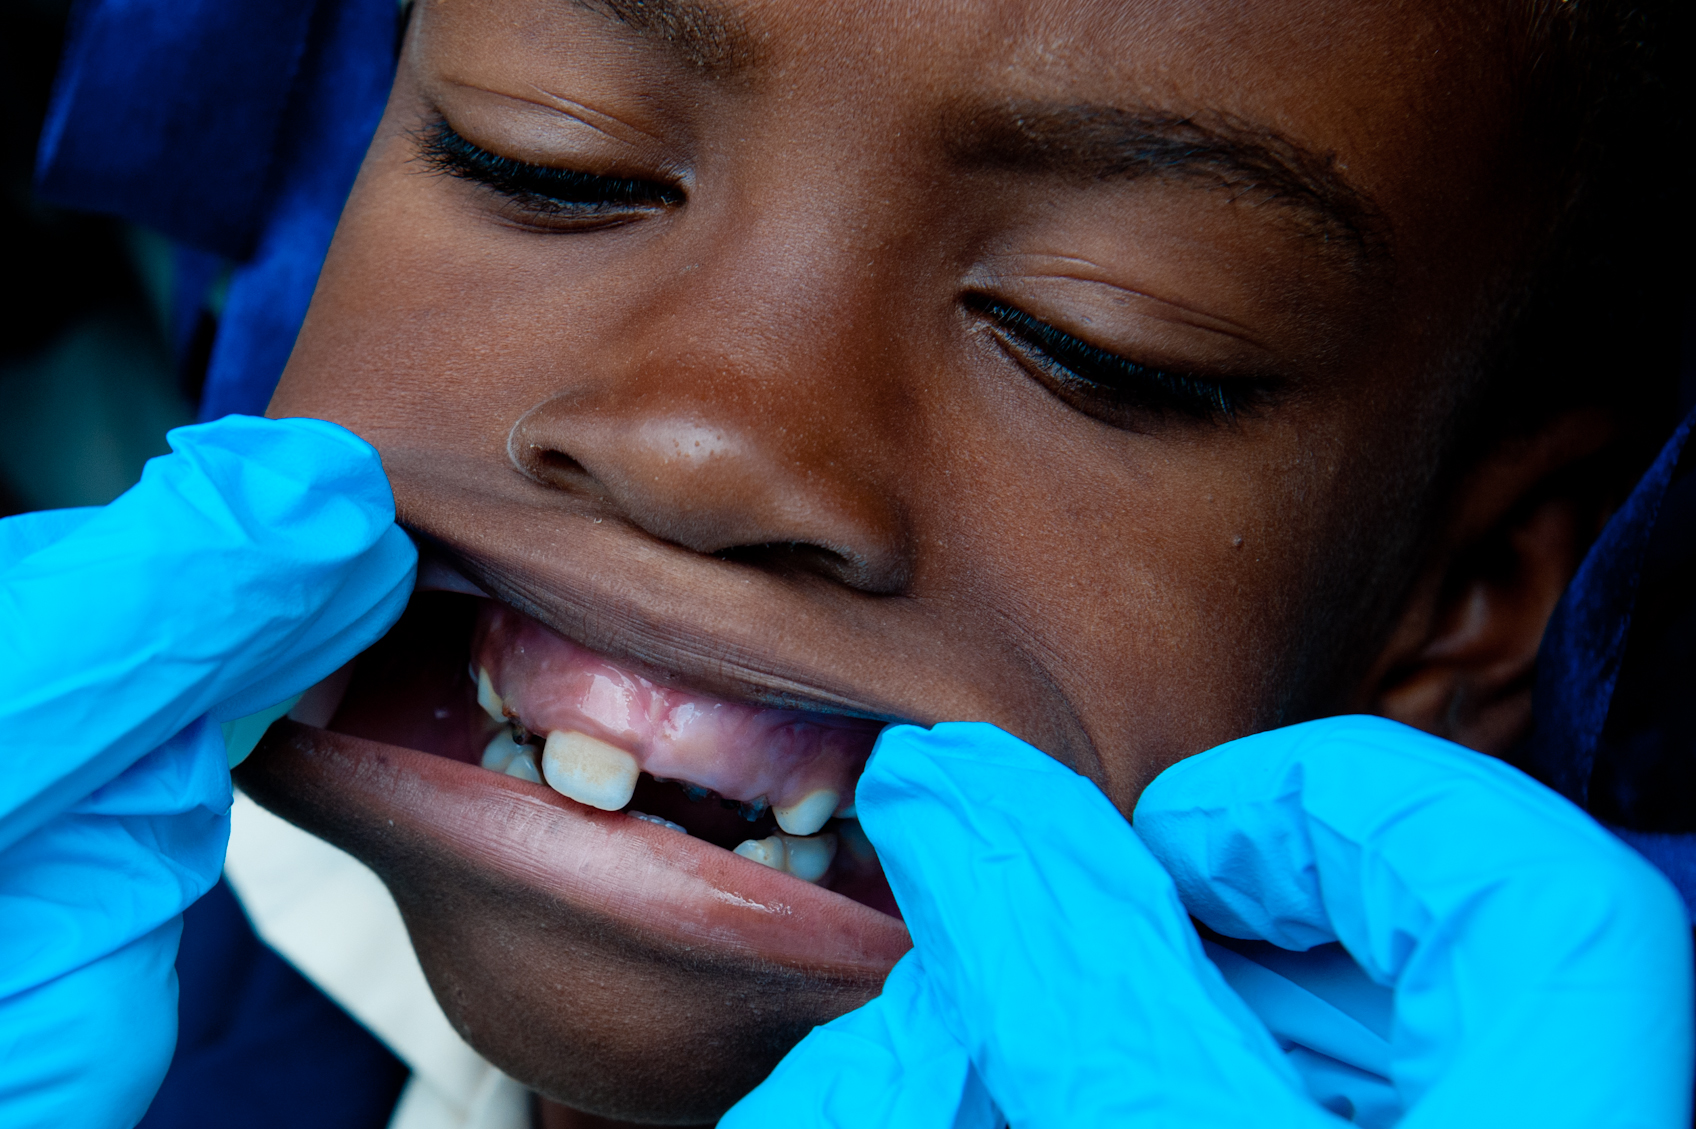 robert_whitman_haitian_dentistry_outreach_14